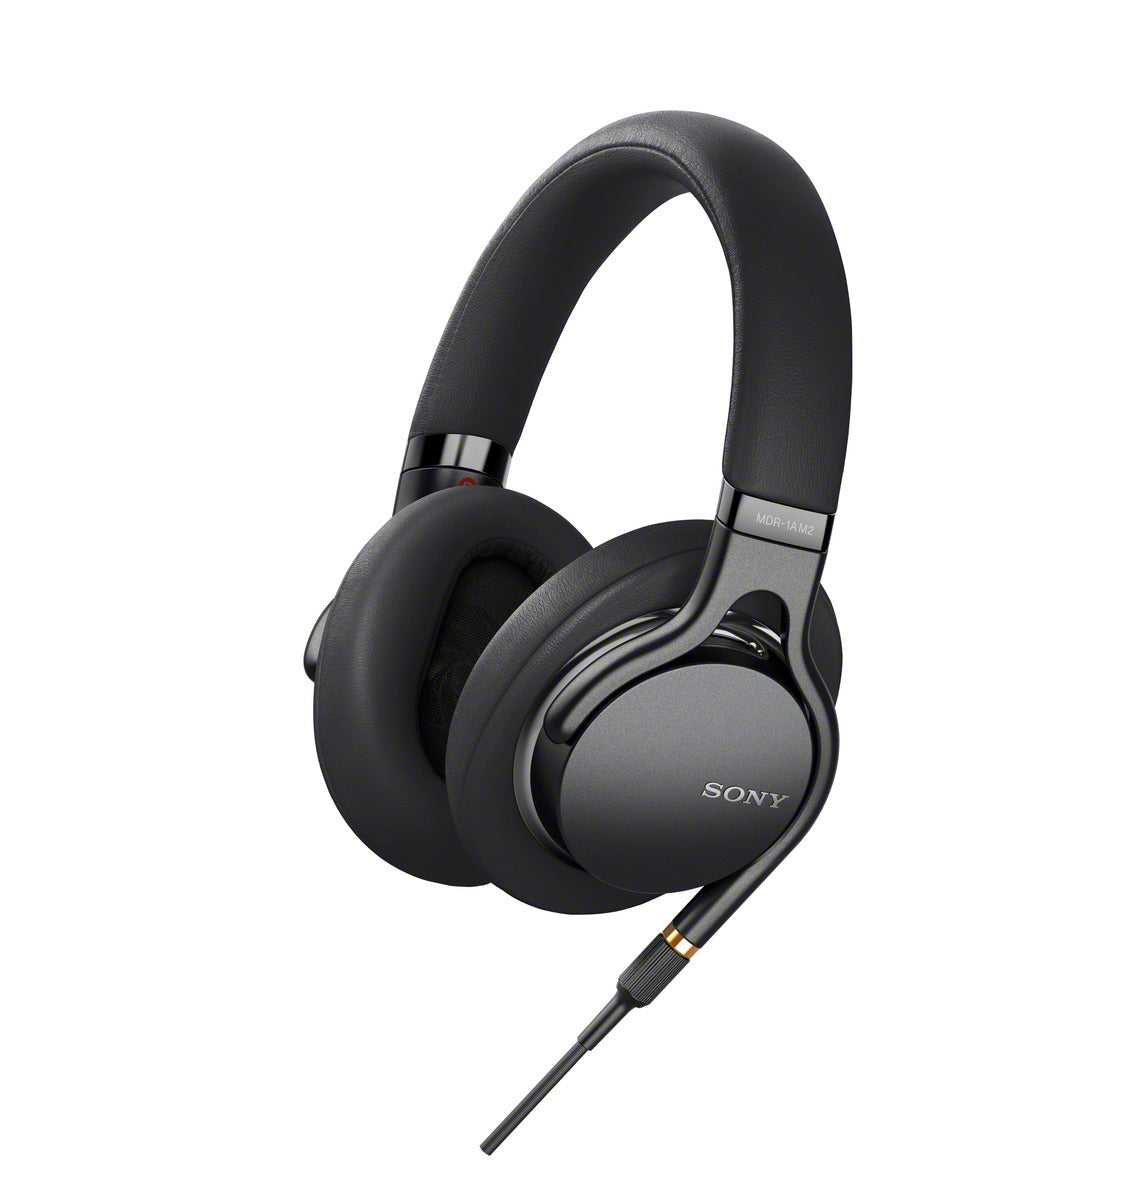 Sony MDR-1AM2 Hi-Res Headphone